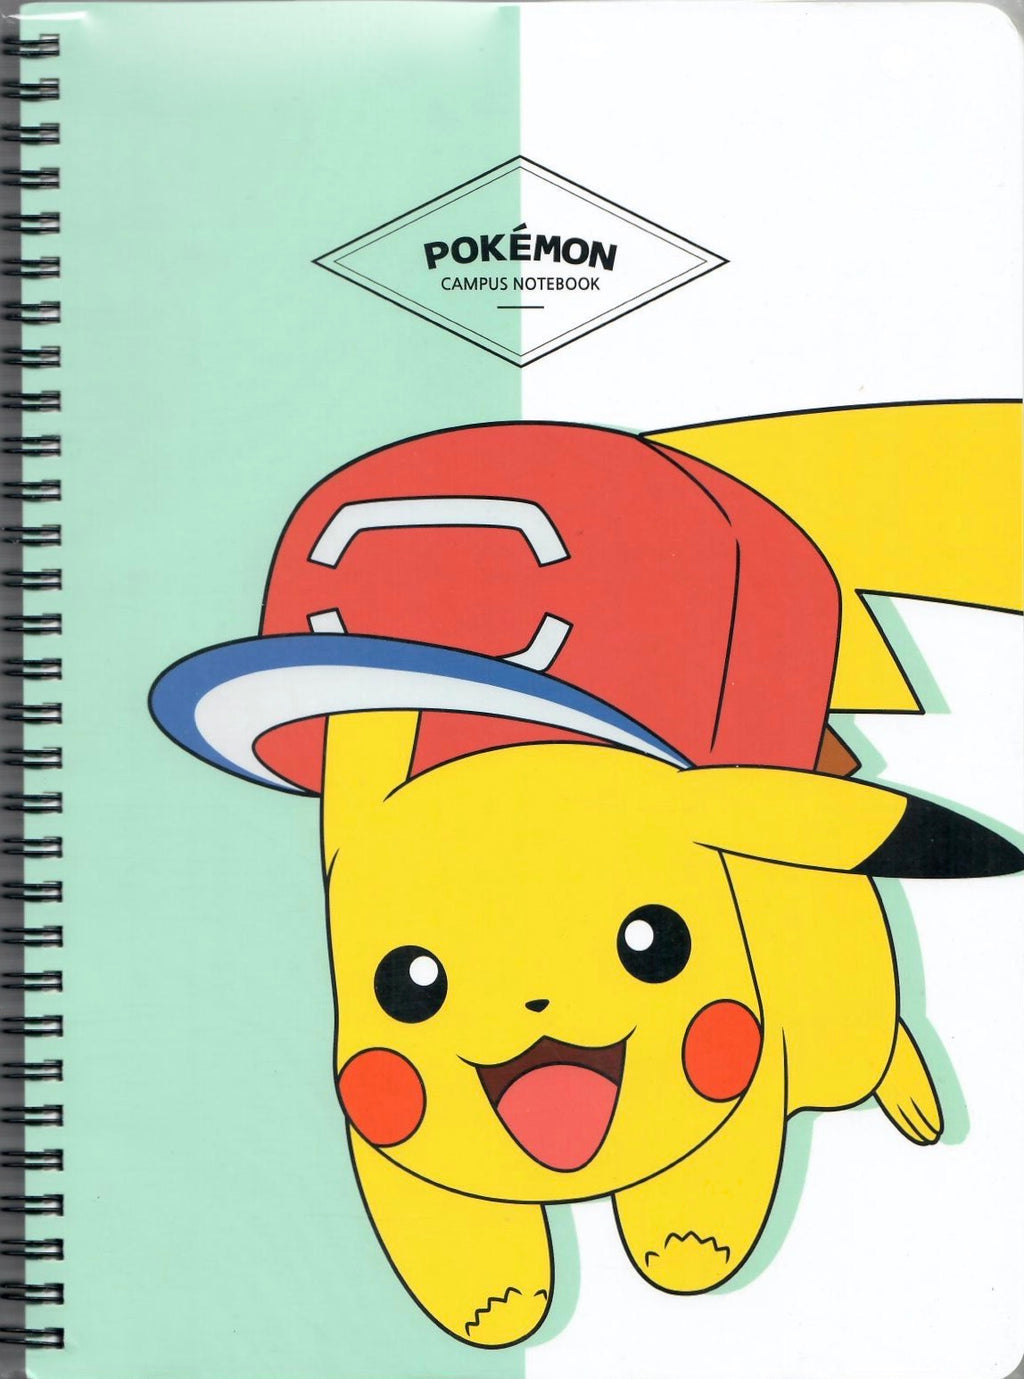 Pokemon Campus Notebook